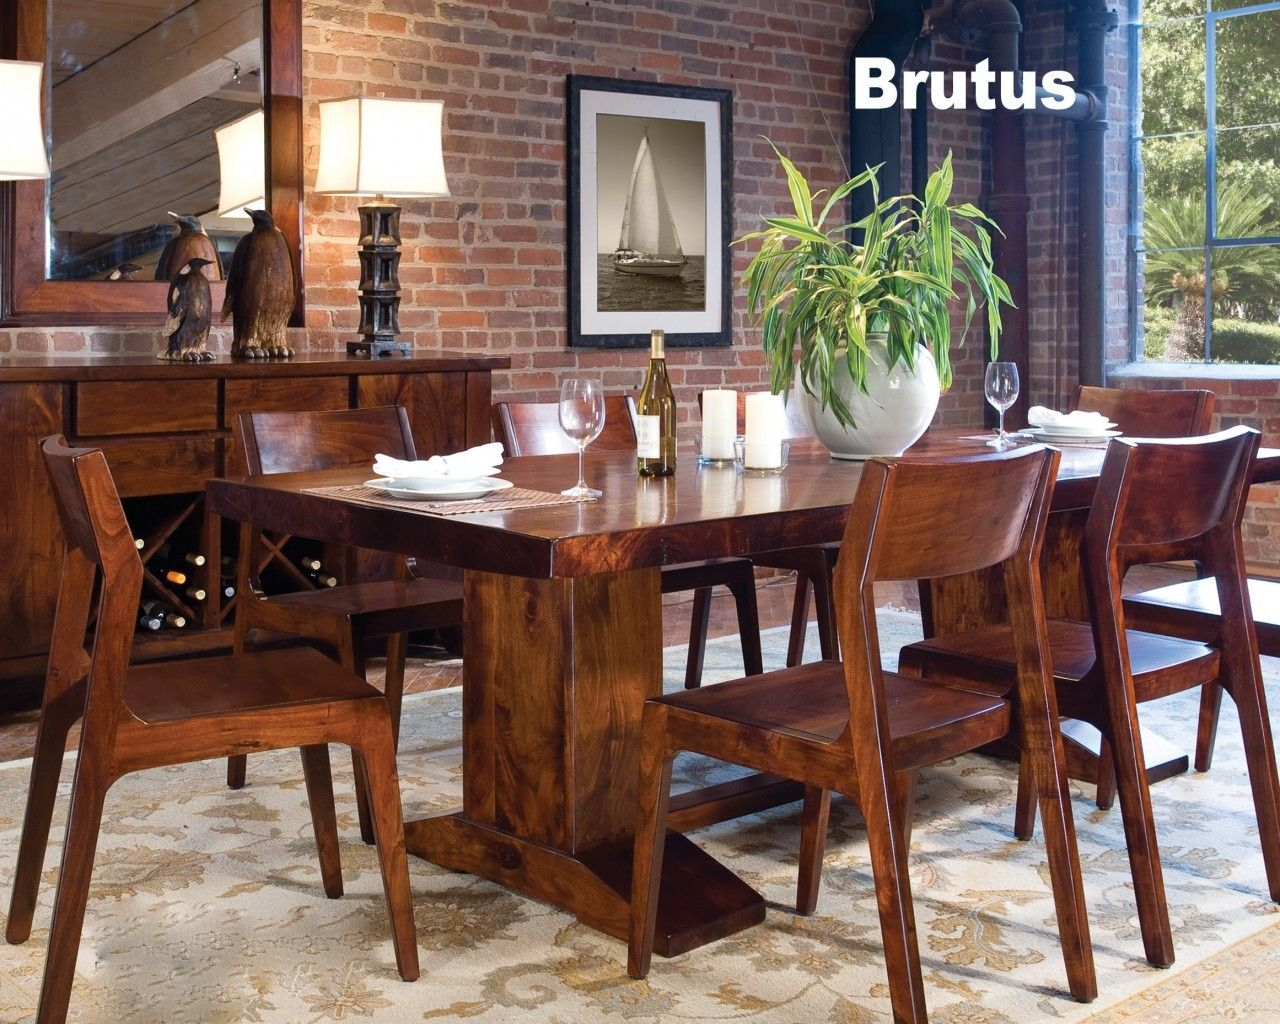 World Interiors - Brutus Dining Table 94, $2,499.00 (http://www.worldinteriors.com/brutus-dining-table-94/)